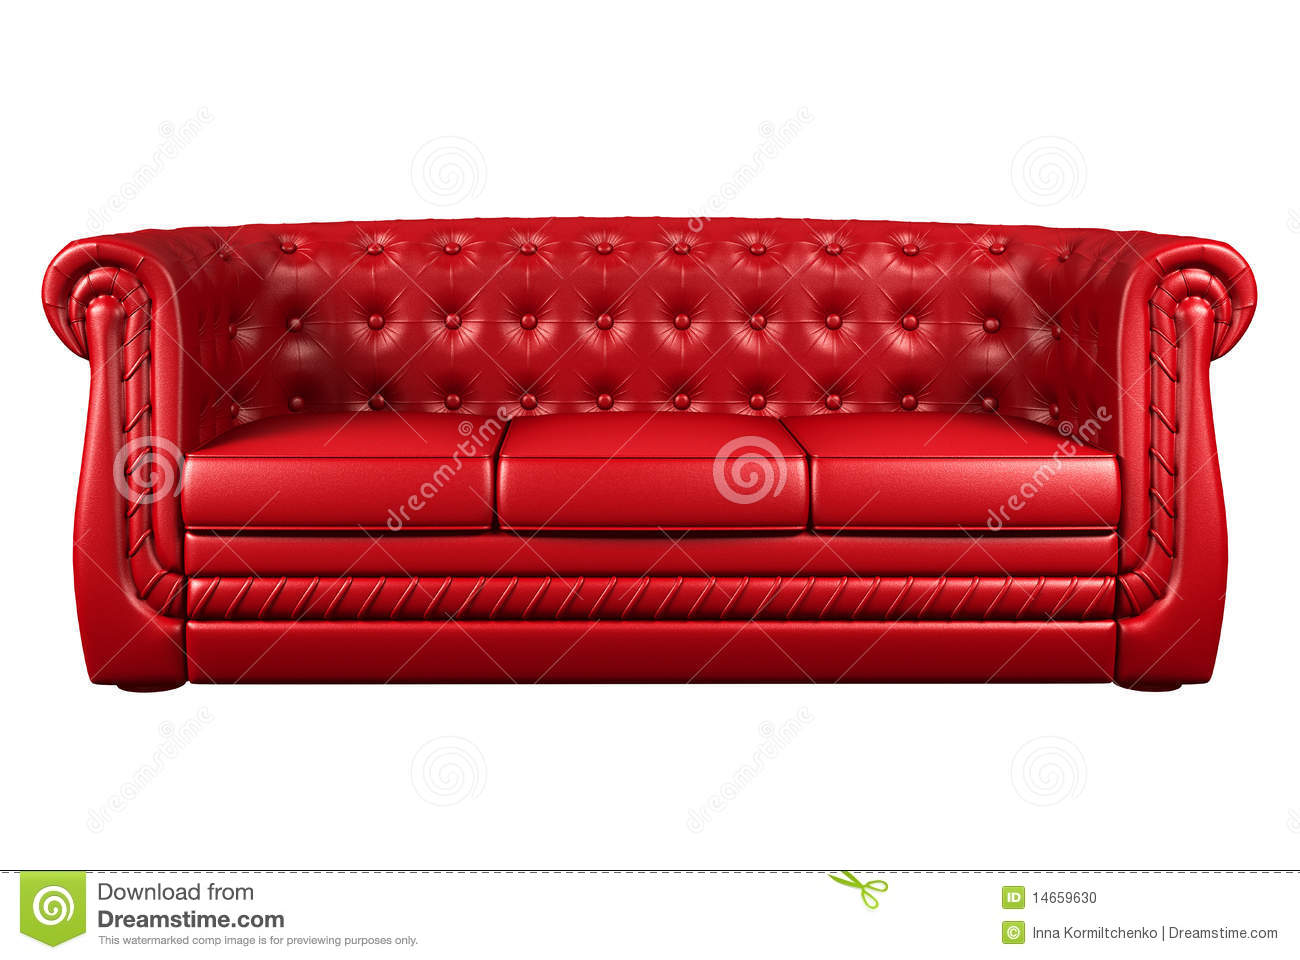 Red leather sofa isolated over white 3d